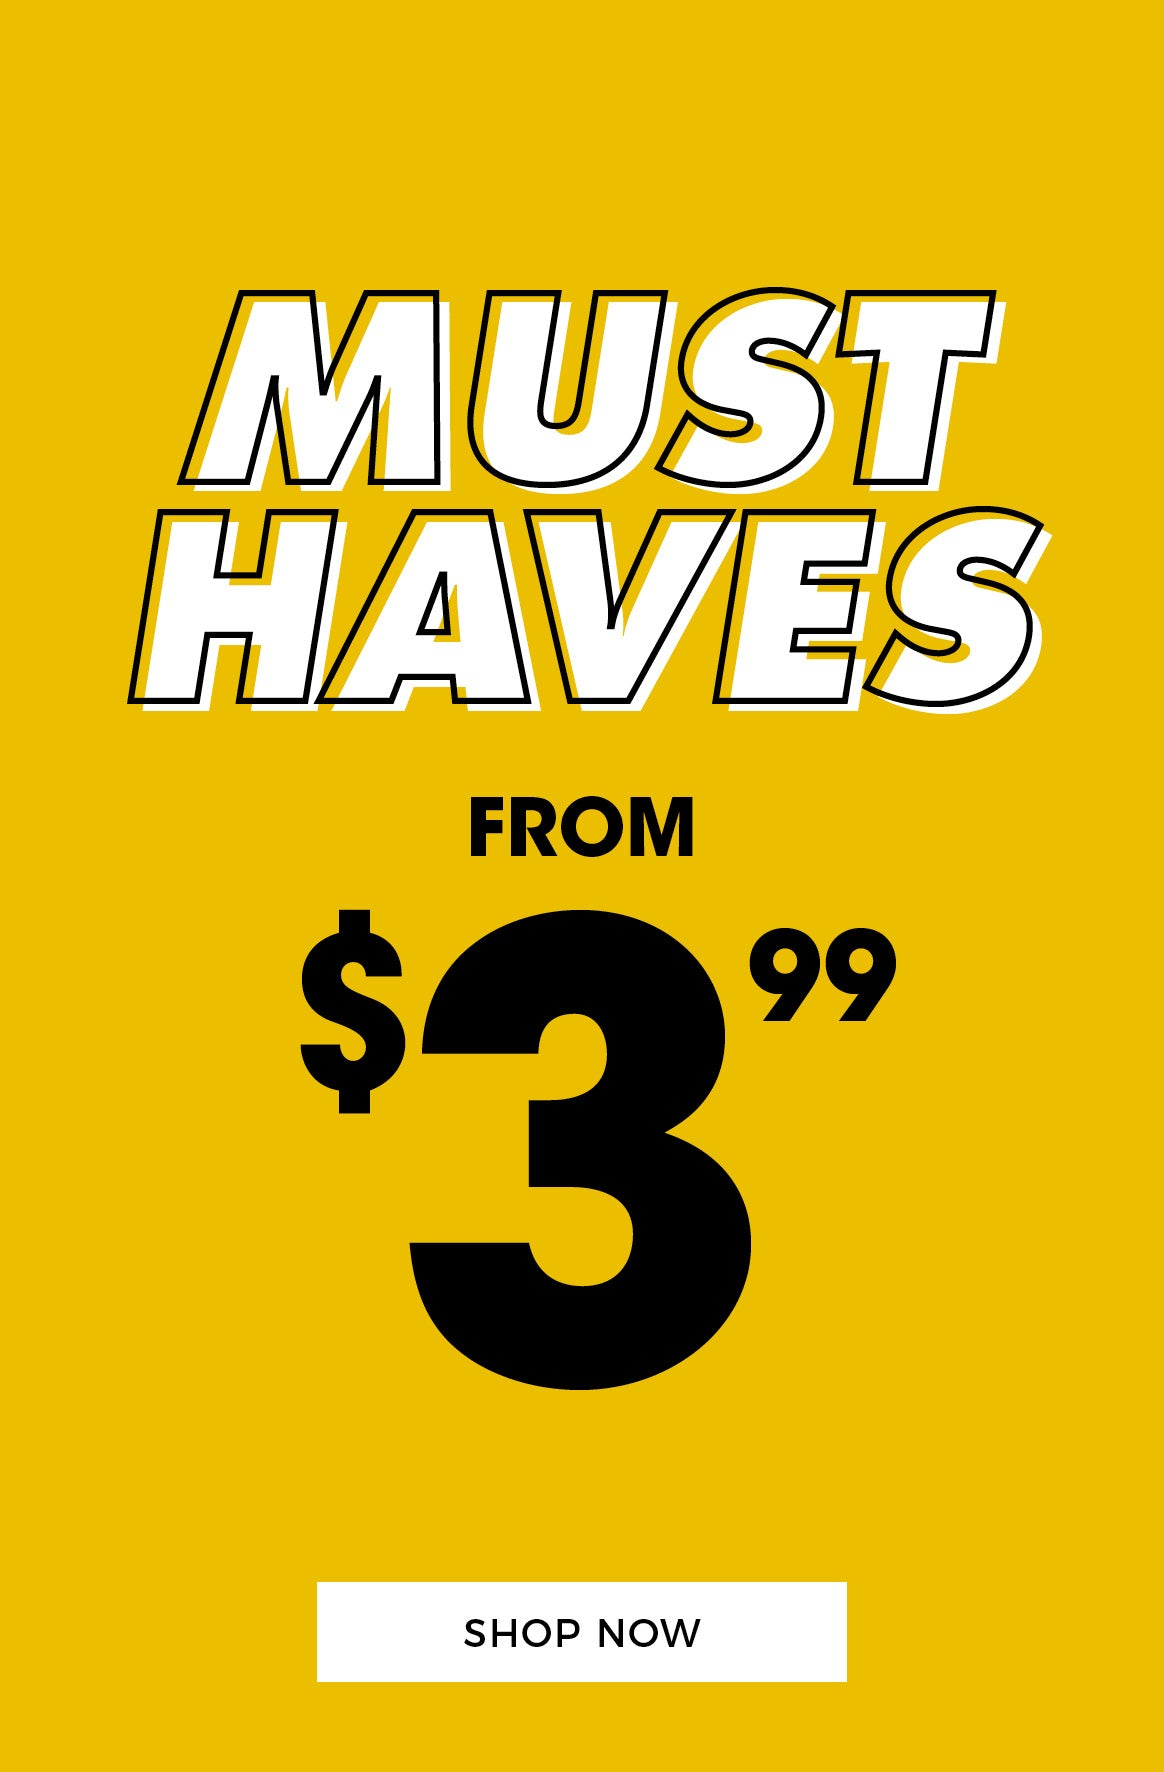 Must Haves from $3.99 - Shop Now